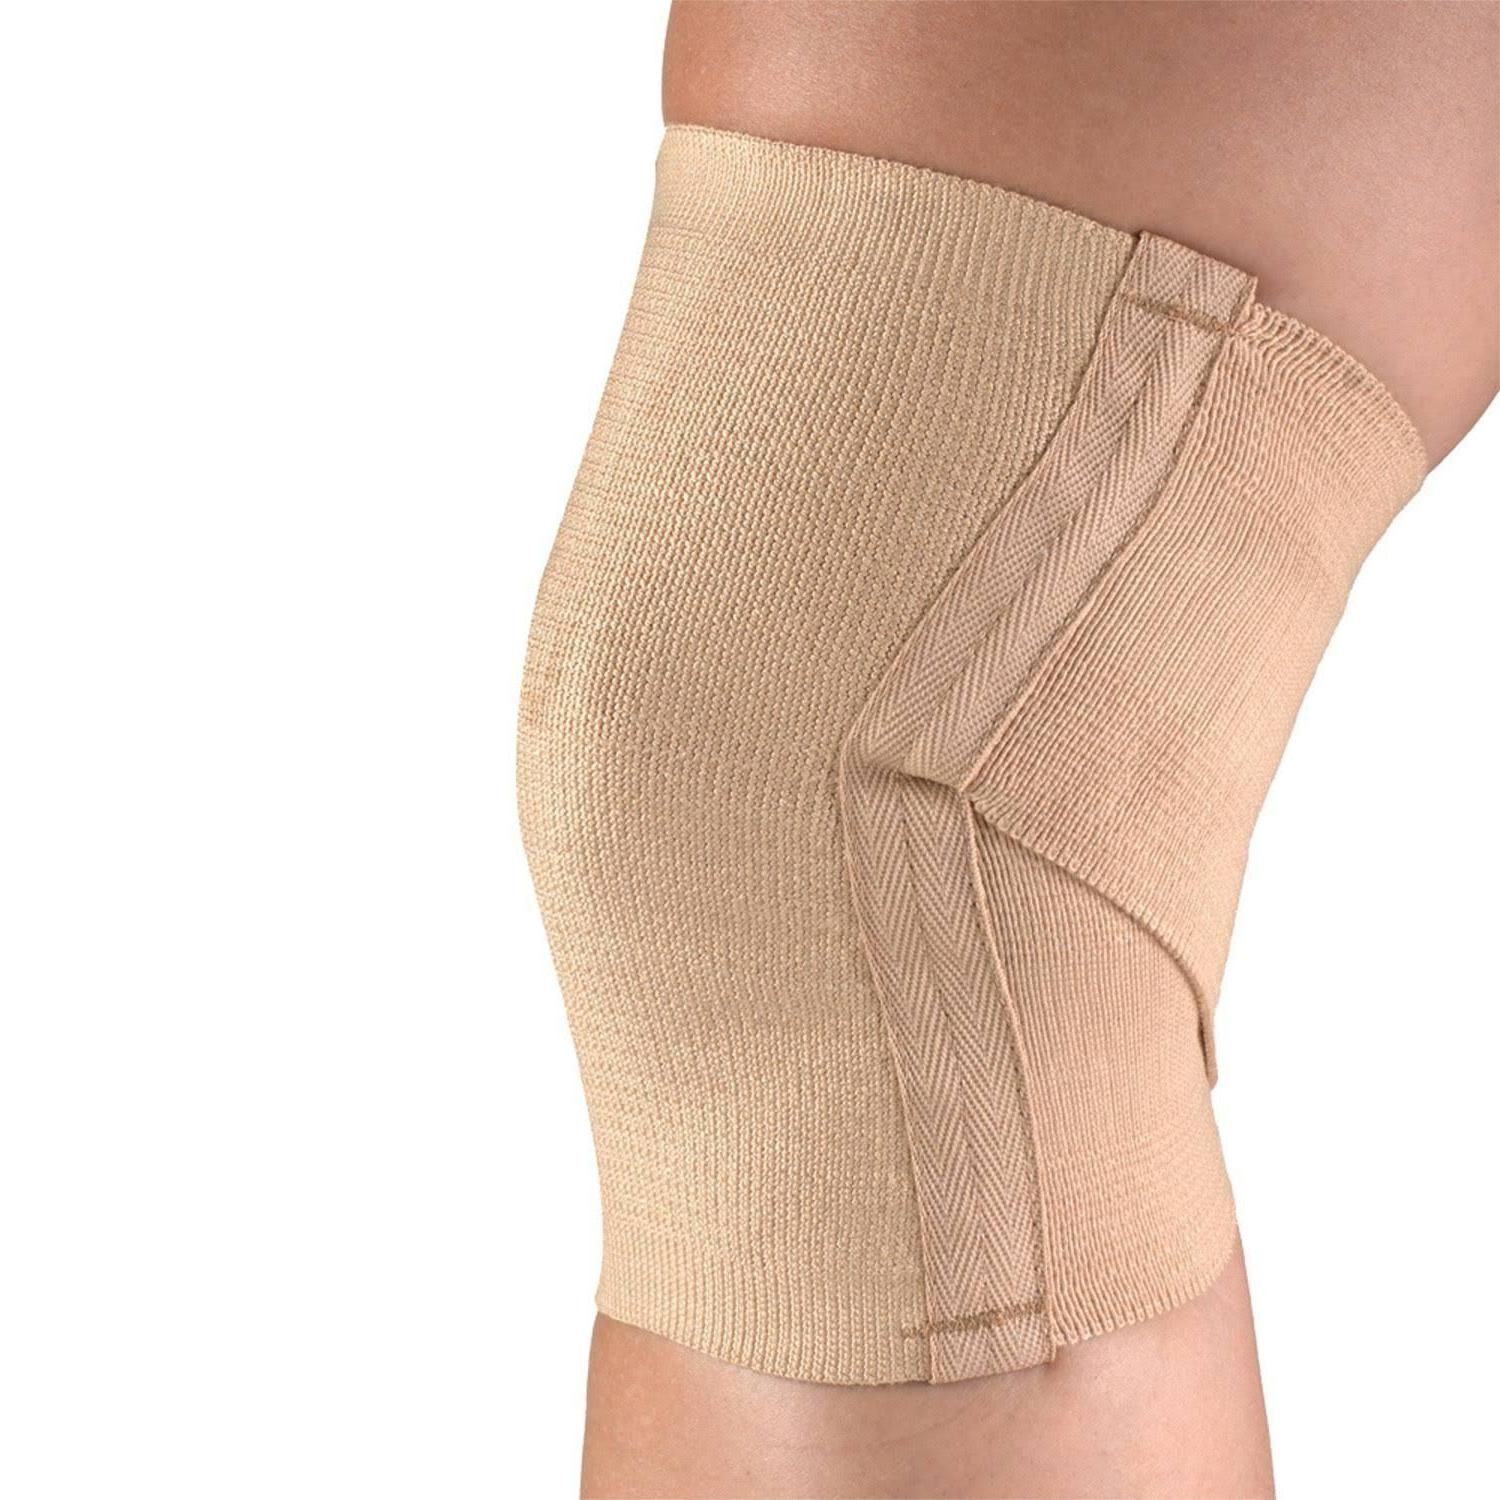 knee support pullover criss cross sport or